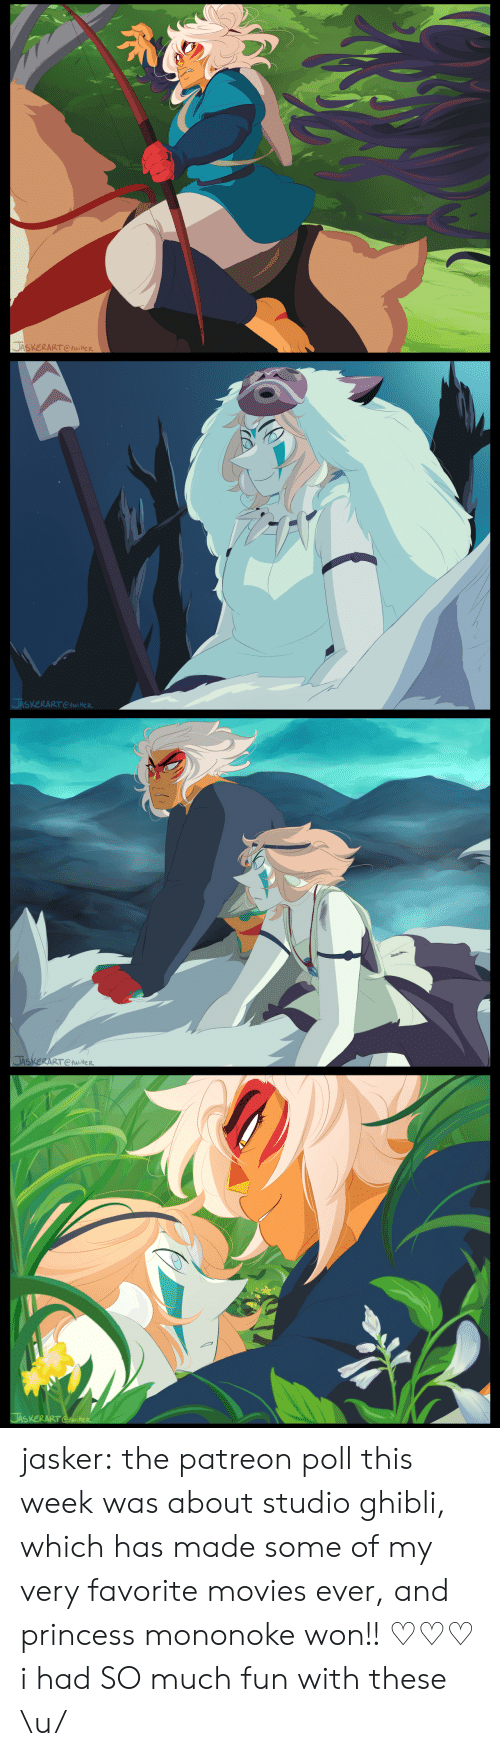 jas: 豸  JASKERART Ctwitter   SXERARTtwieR   JAS  ERART CtwiteR jasker:  the patreon poll this week was about studio ghibli, which has made some of my very favorite movies ever, and princess mononoke won!! ♡♡♡ i had SO much fun with these \u/